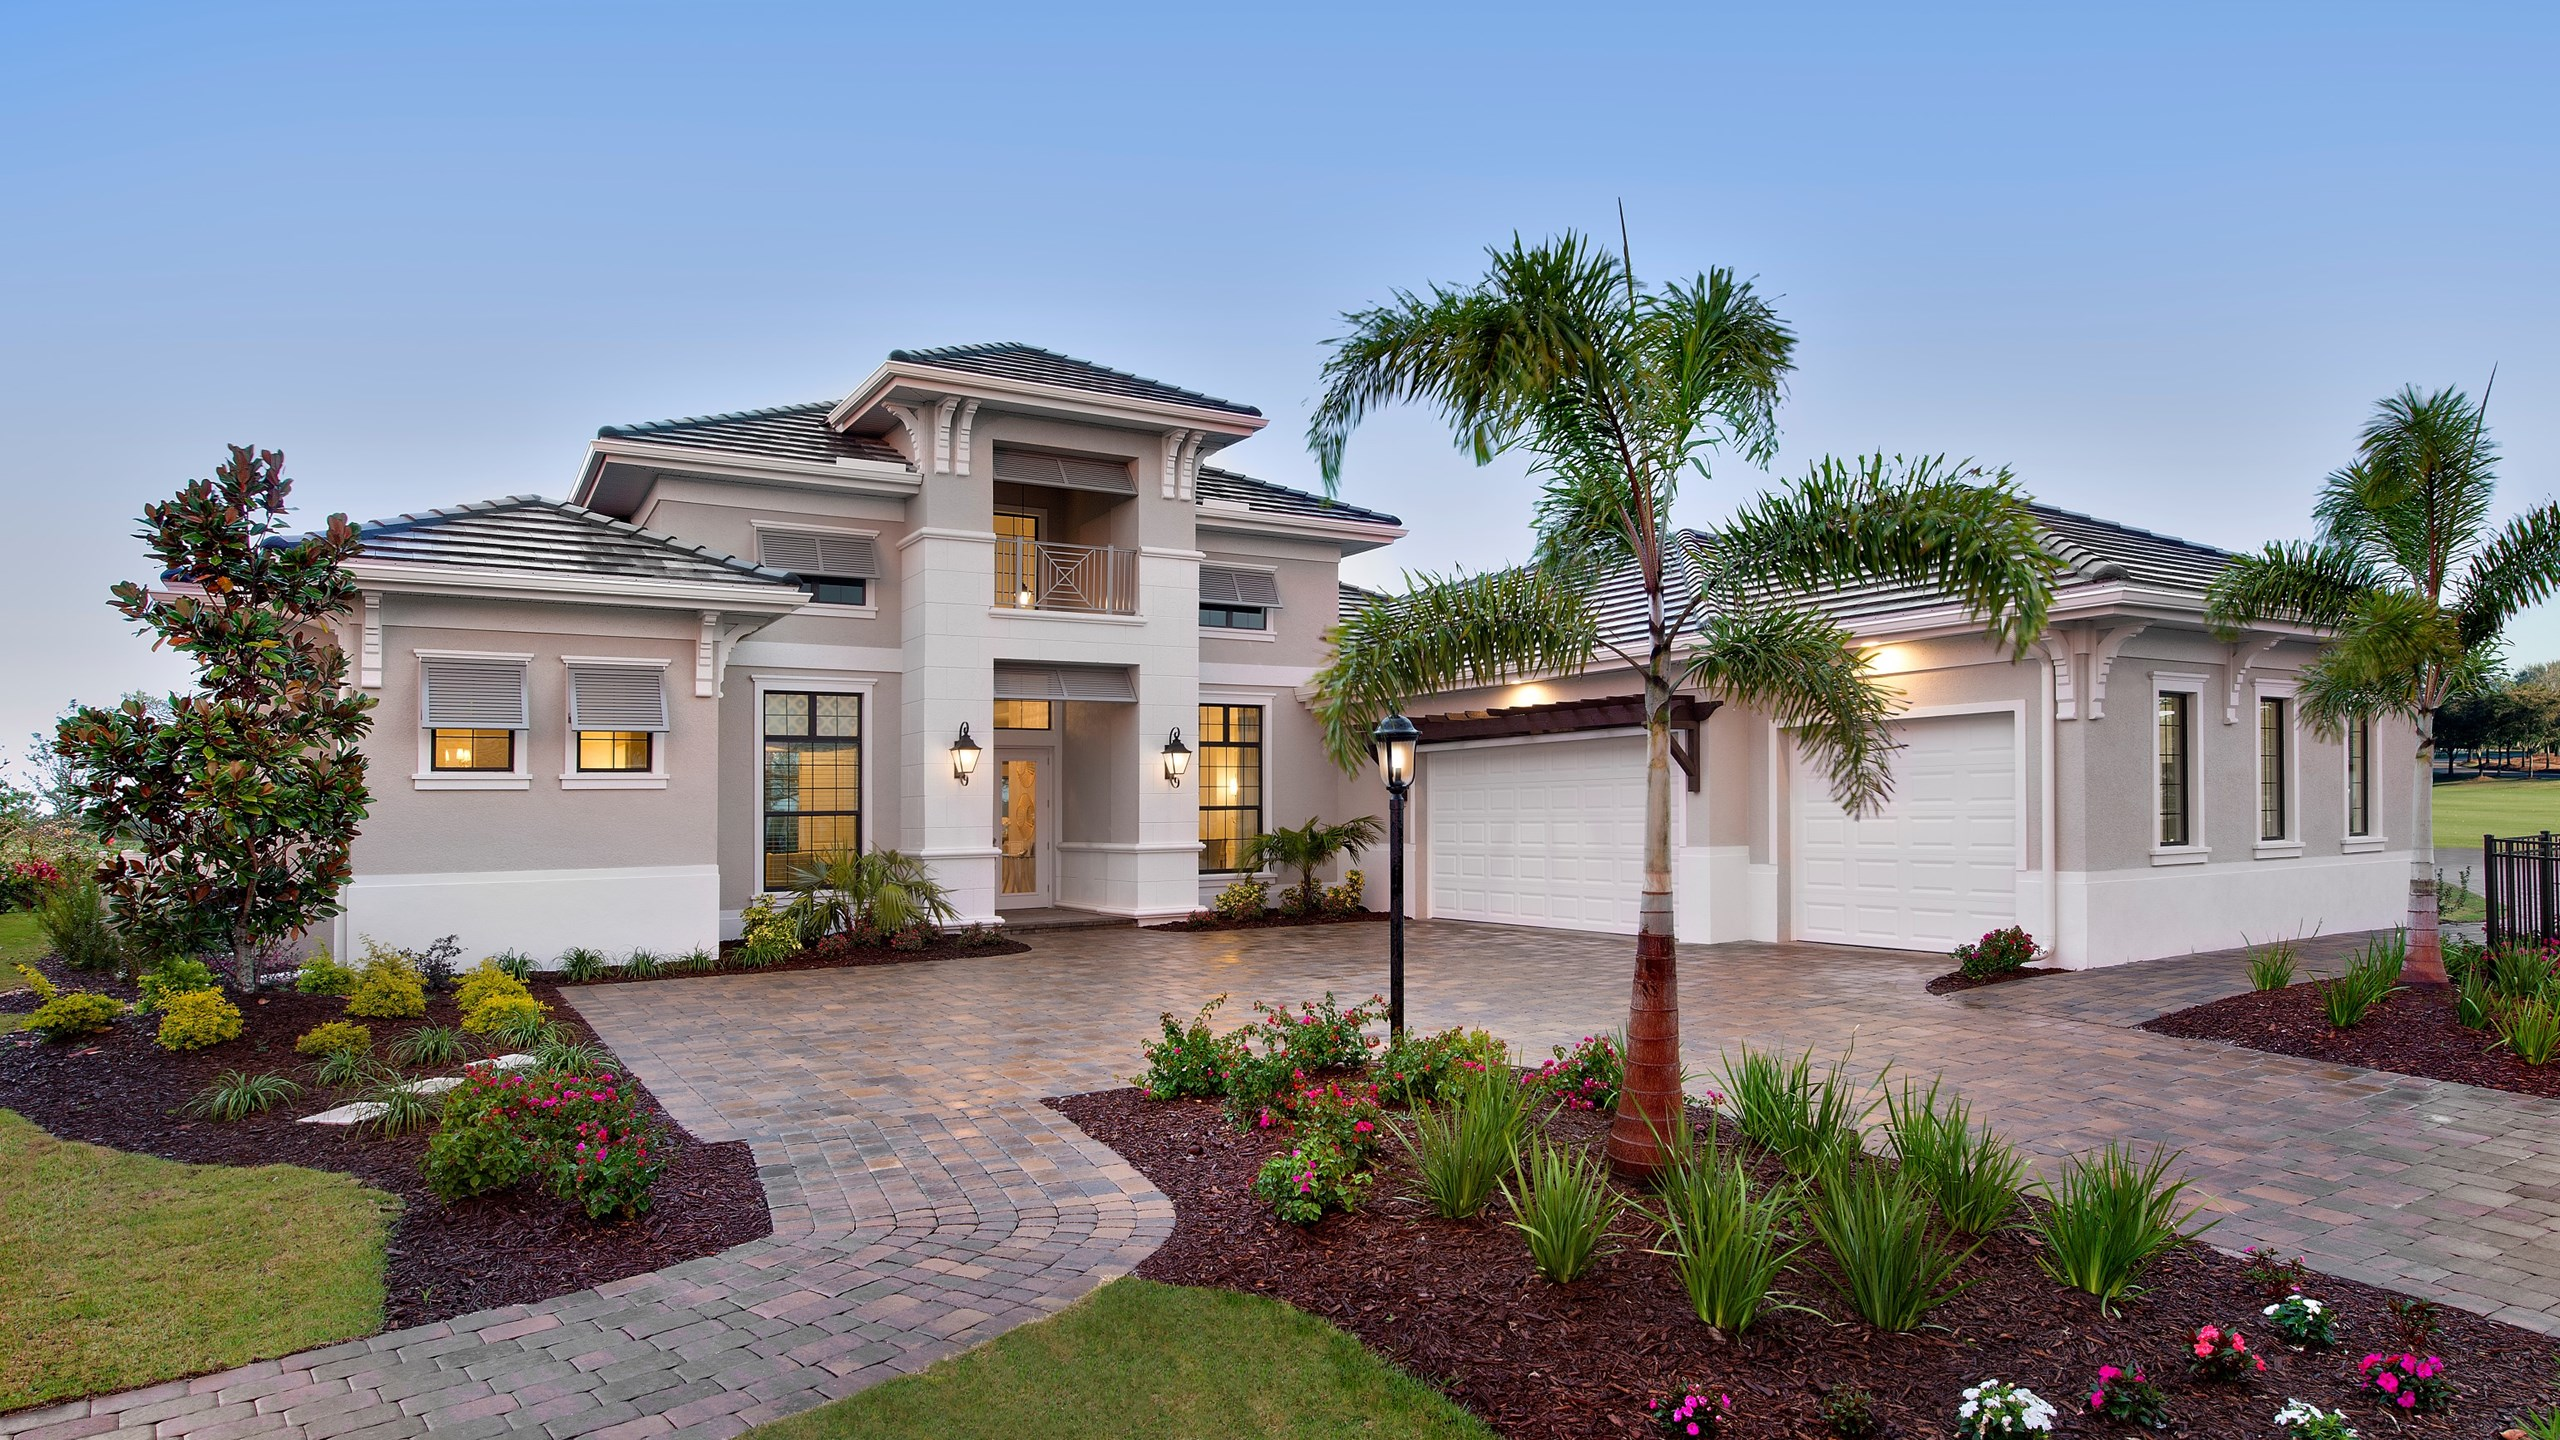 New Homes at Esplanade at Lakewood Ranch — Castello by Taylor Morrison Florida Real Estate | Lakewood Ranch Realtor